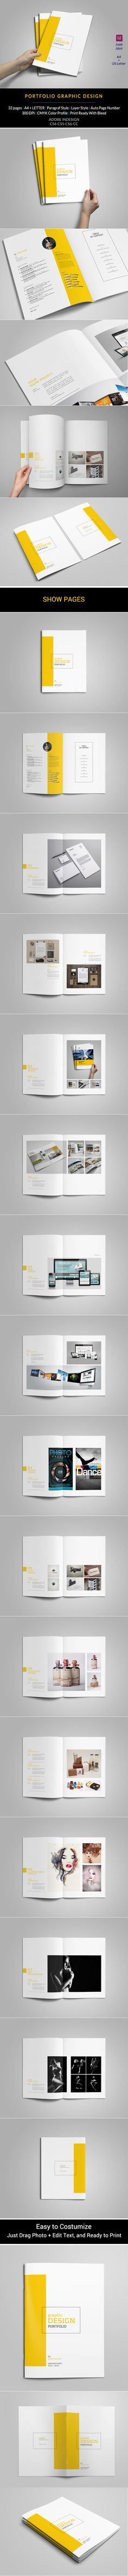 https://www.behance.net/gallery/26689171/Graphic-Design-Portfolio-Template